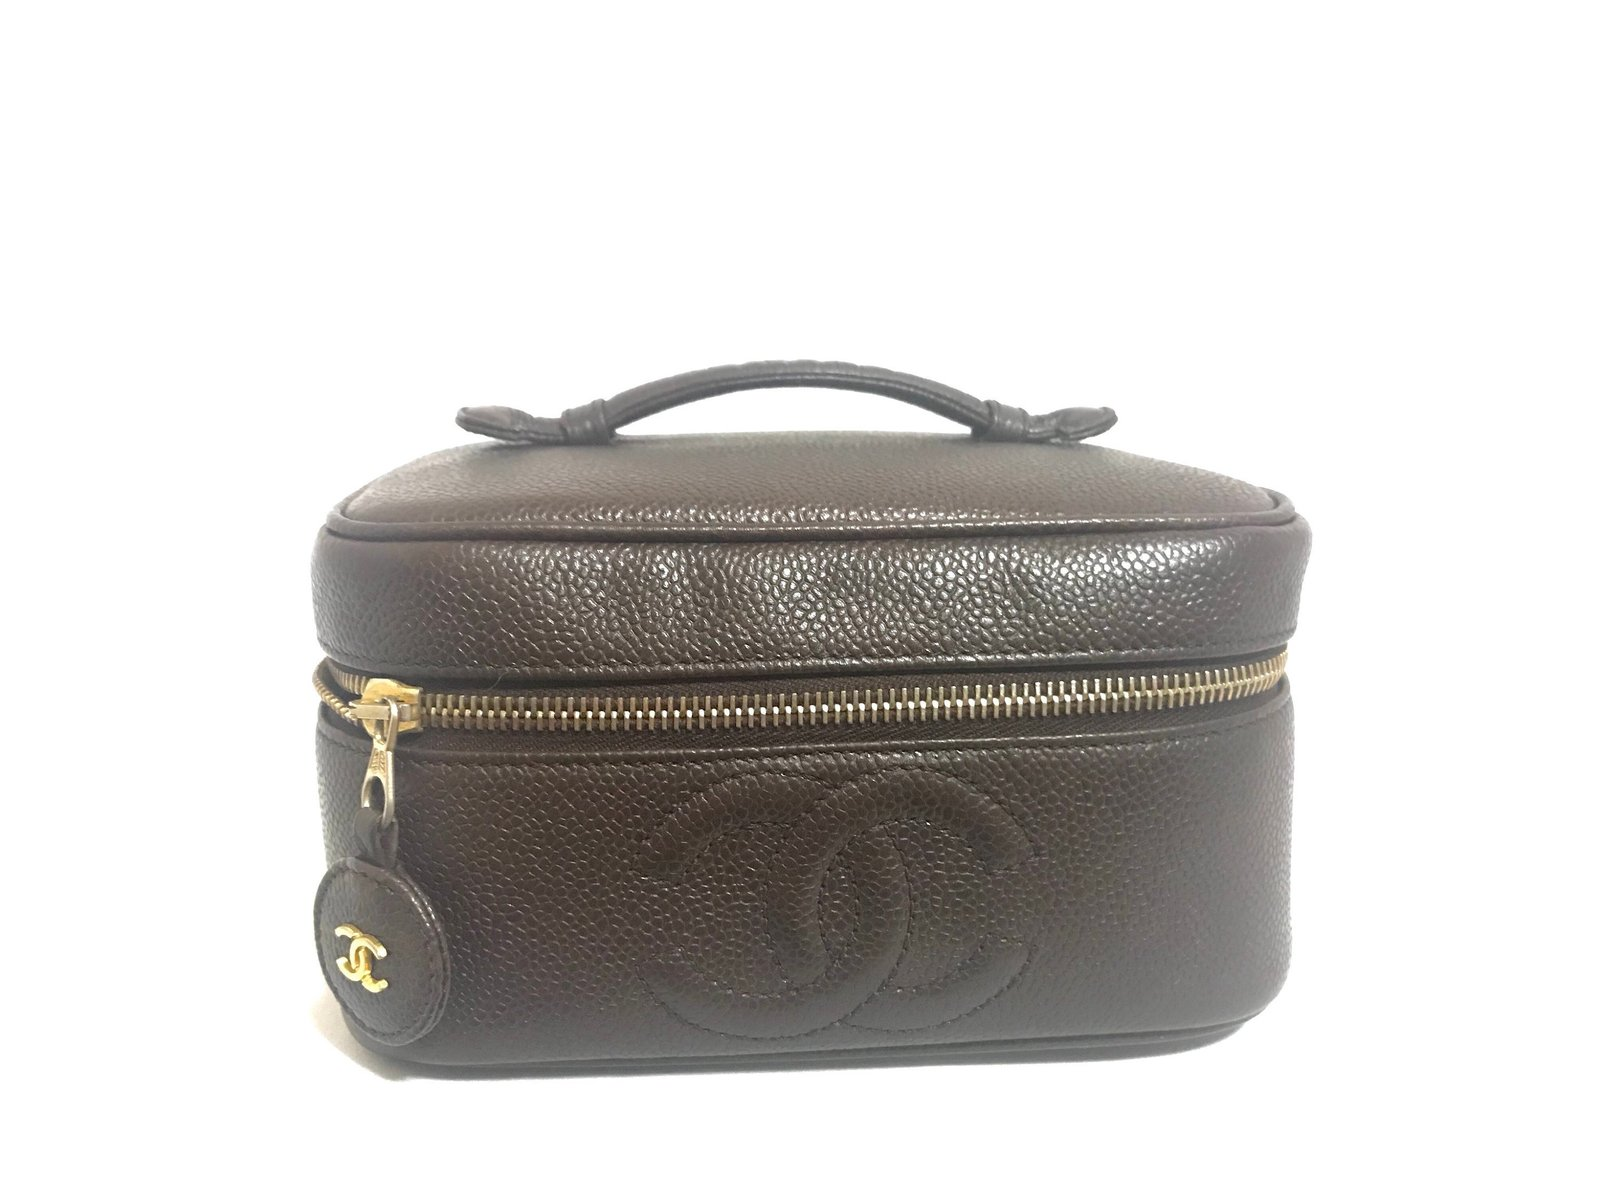 66a4701b4a62 Vintage CHANEL dark brown caviar leather and 14 similar items. Il  fullxfull.1680051015 ktat